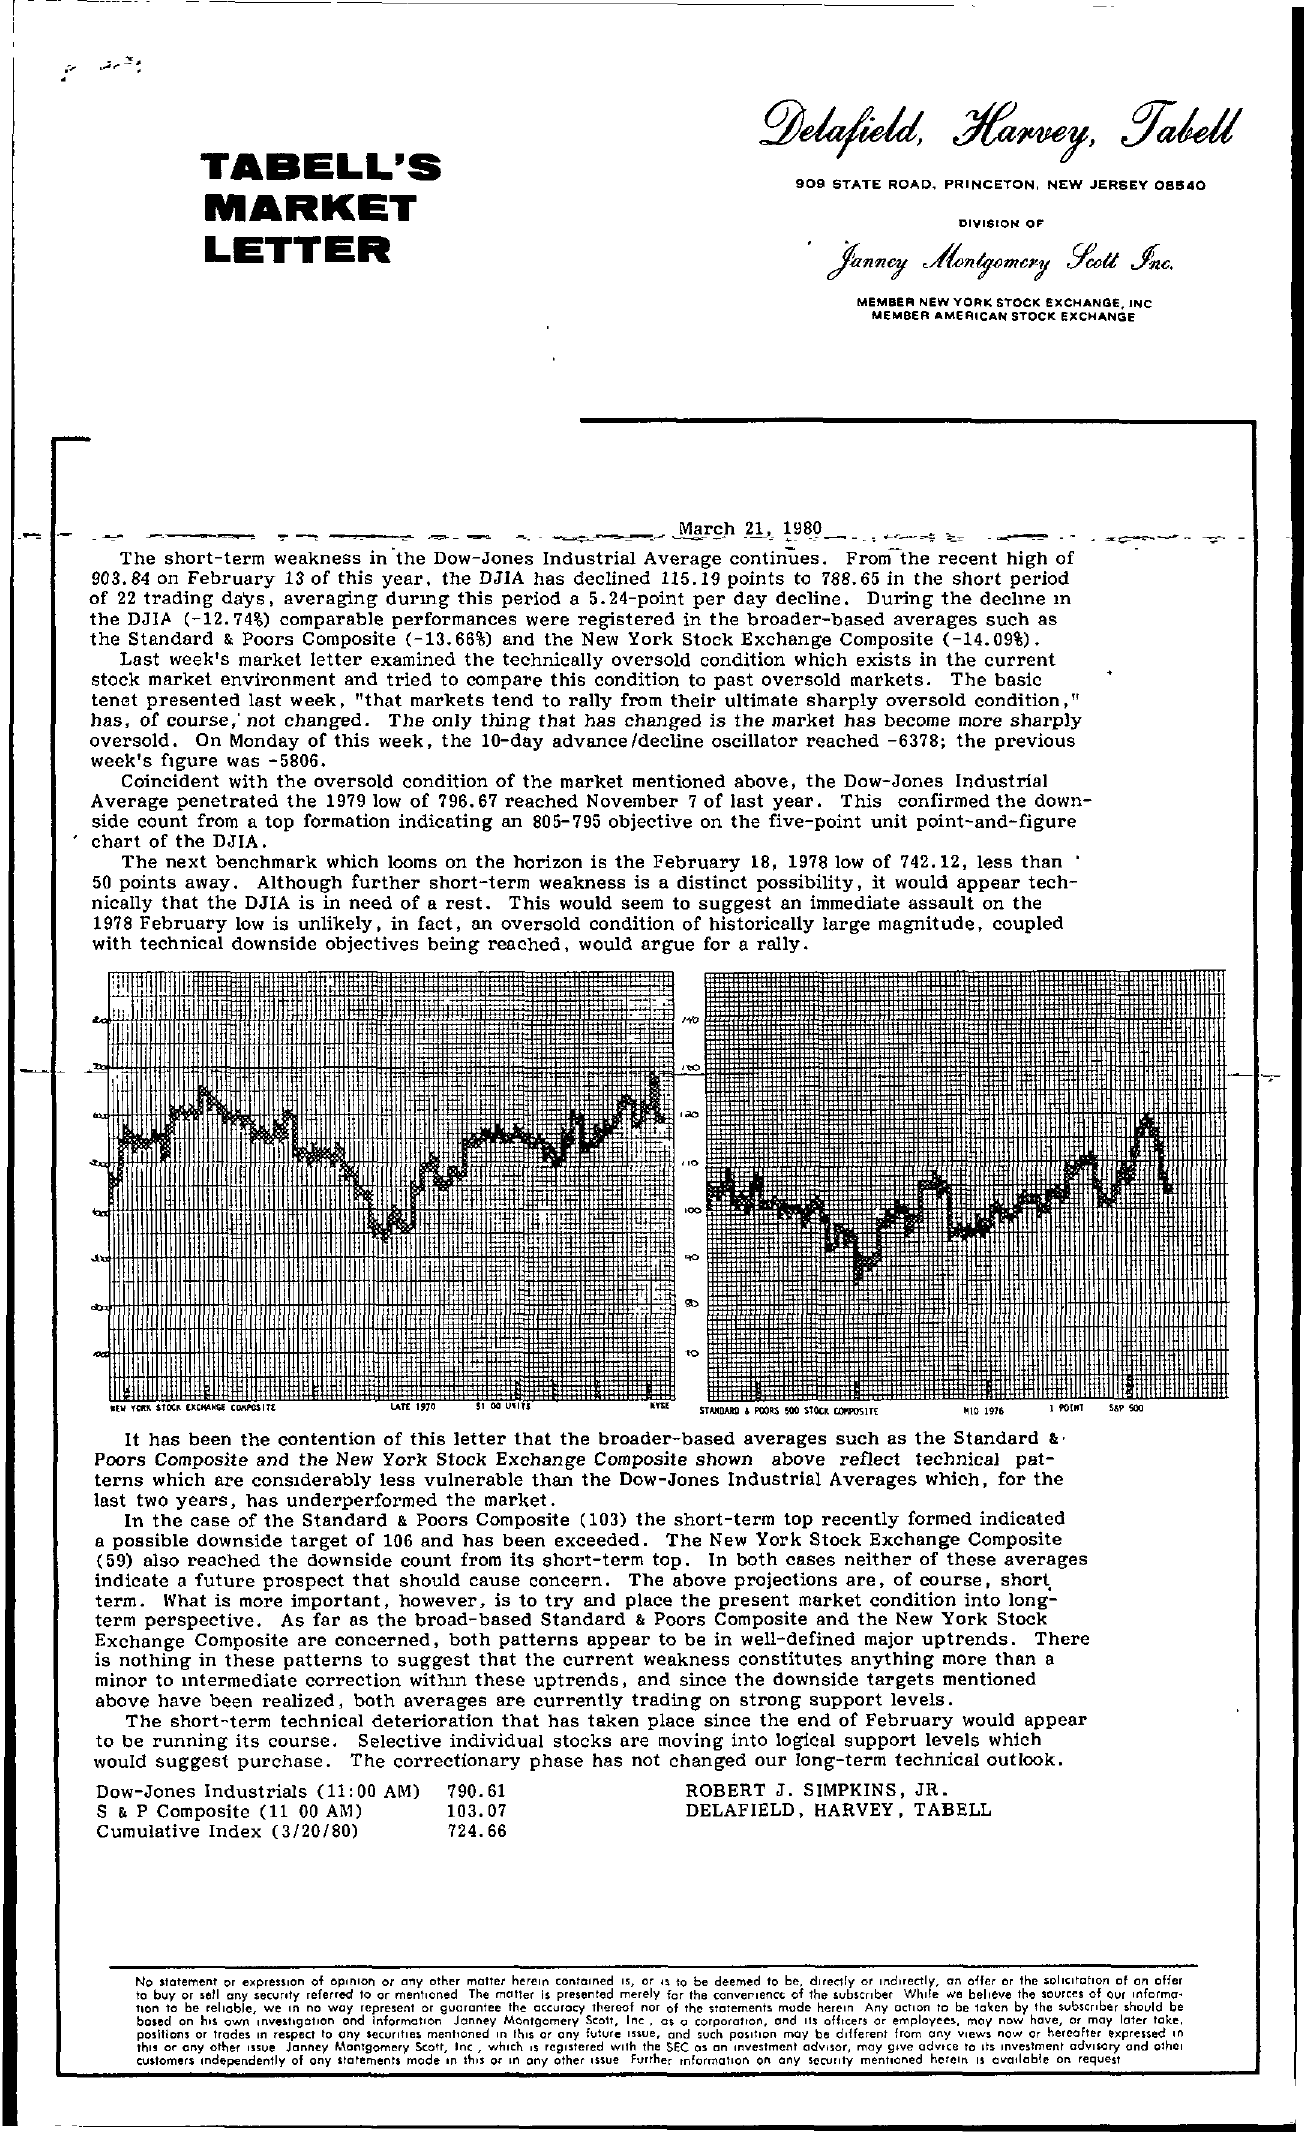 Tabell's Market Letter - March 21, 1980